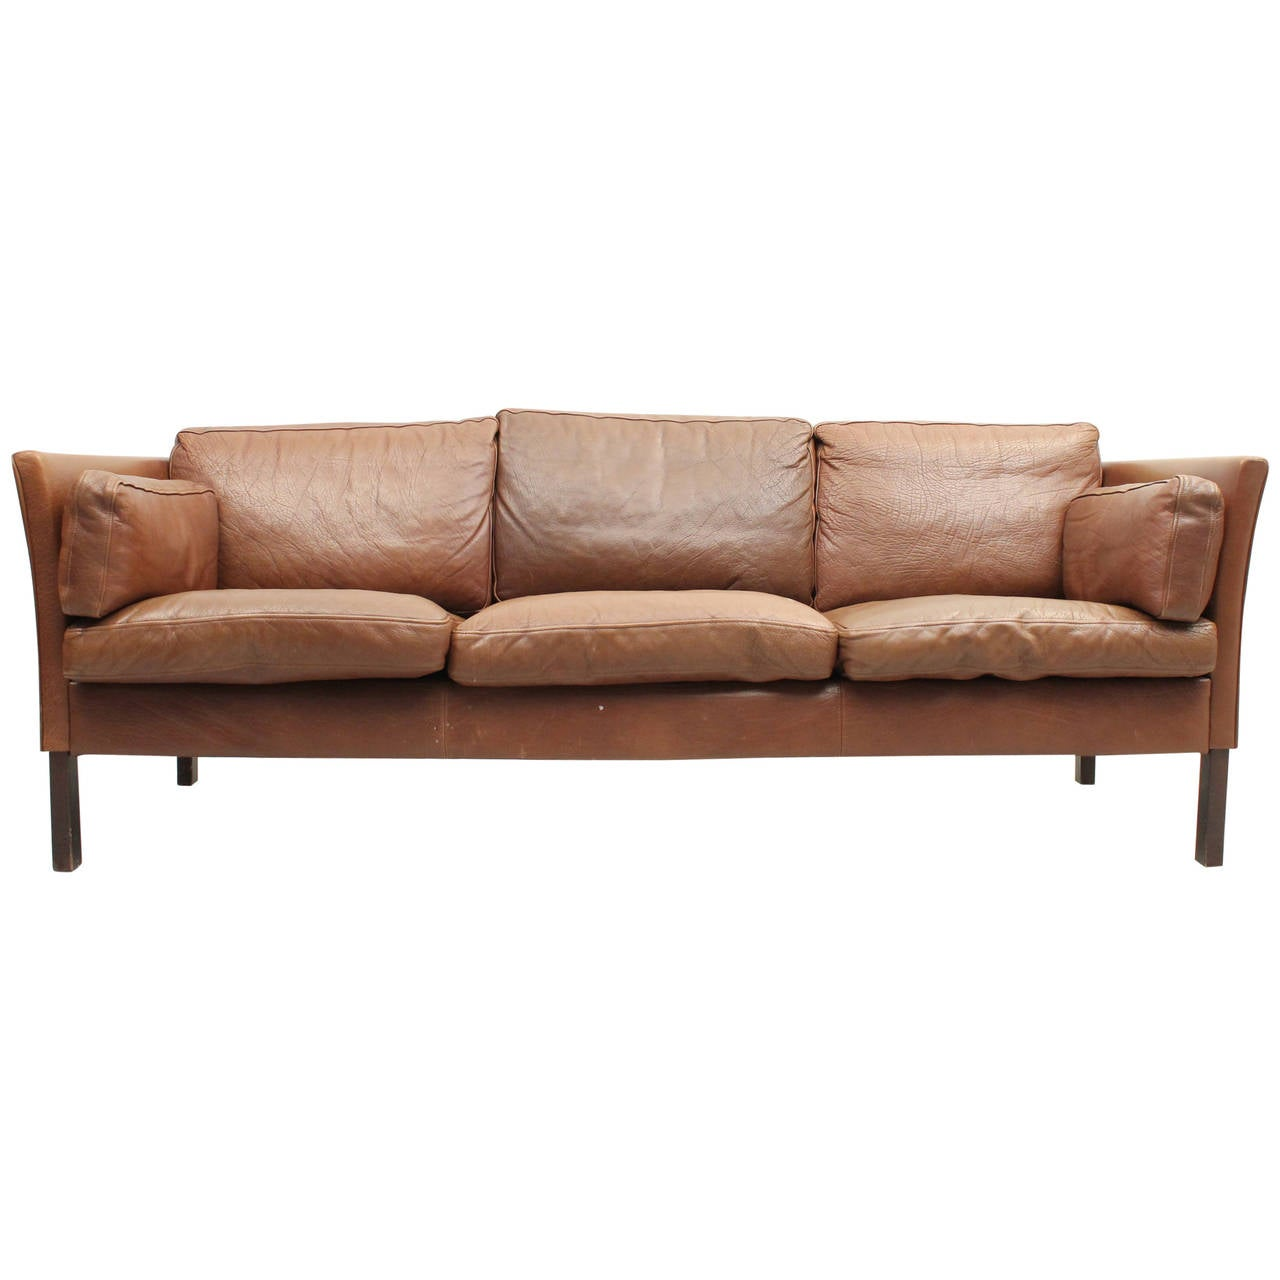 danish mid century modern leather sofa at 1stdibs. Black Bedroom Furniture Sets. Home Design Ideas